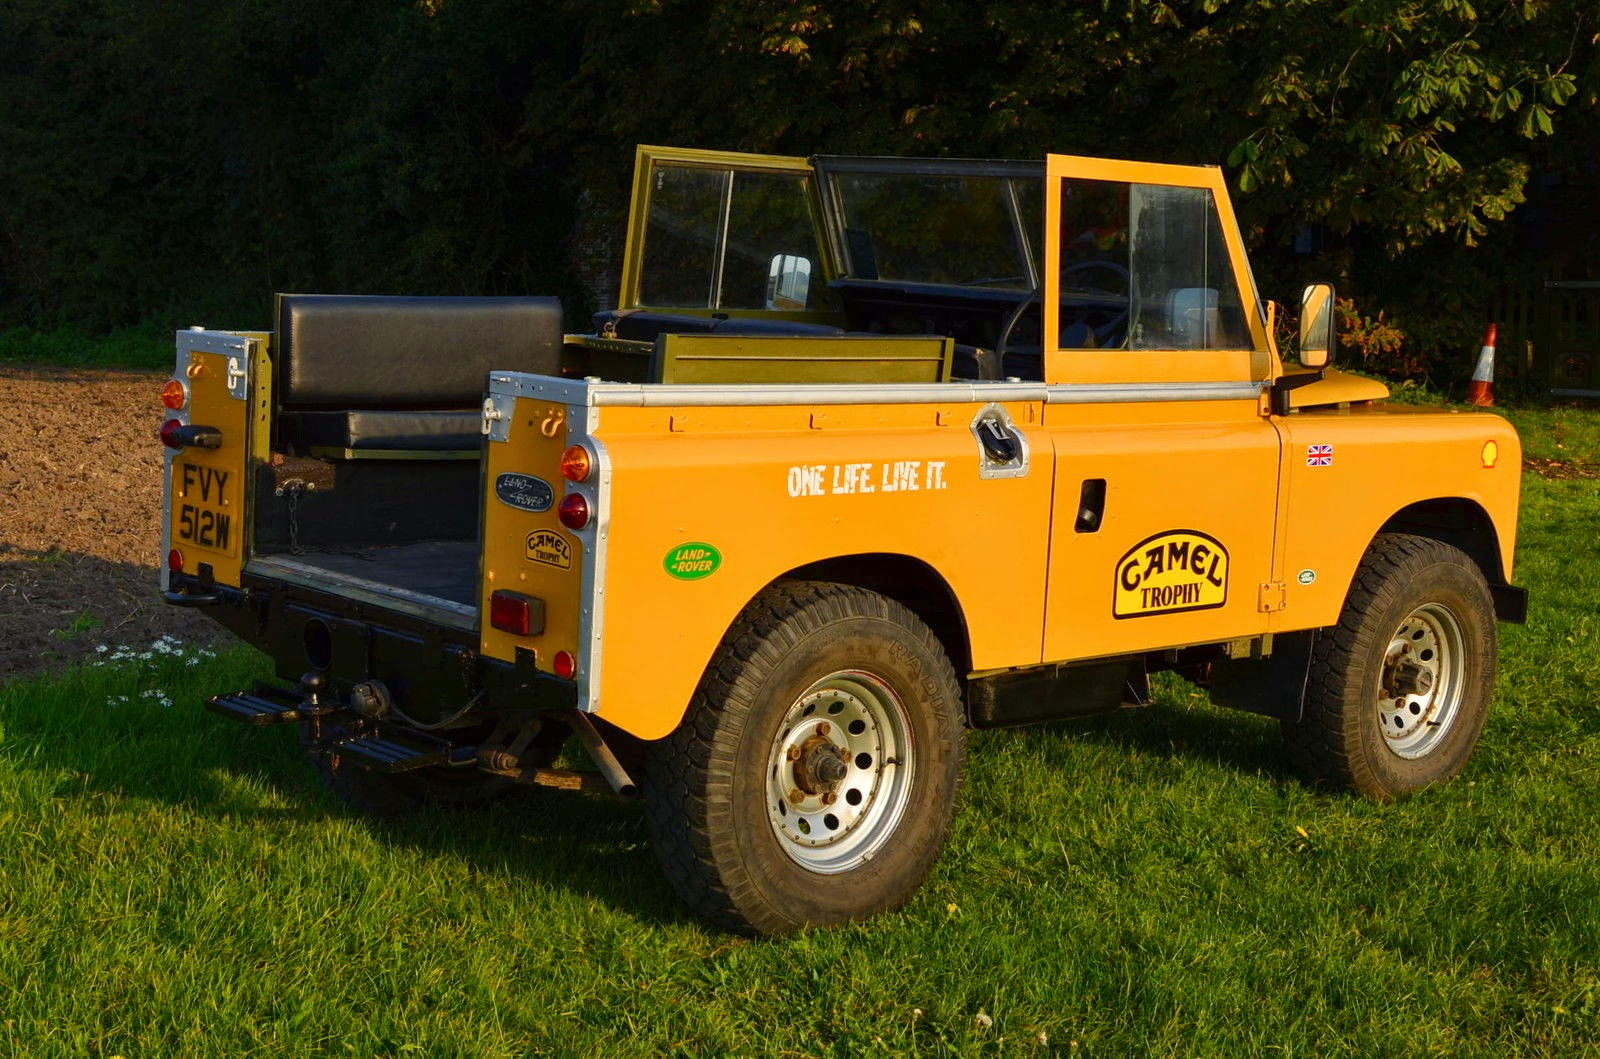 1981 Land Rover Series Iii 88 Swb Iconic Camel Trophy